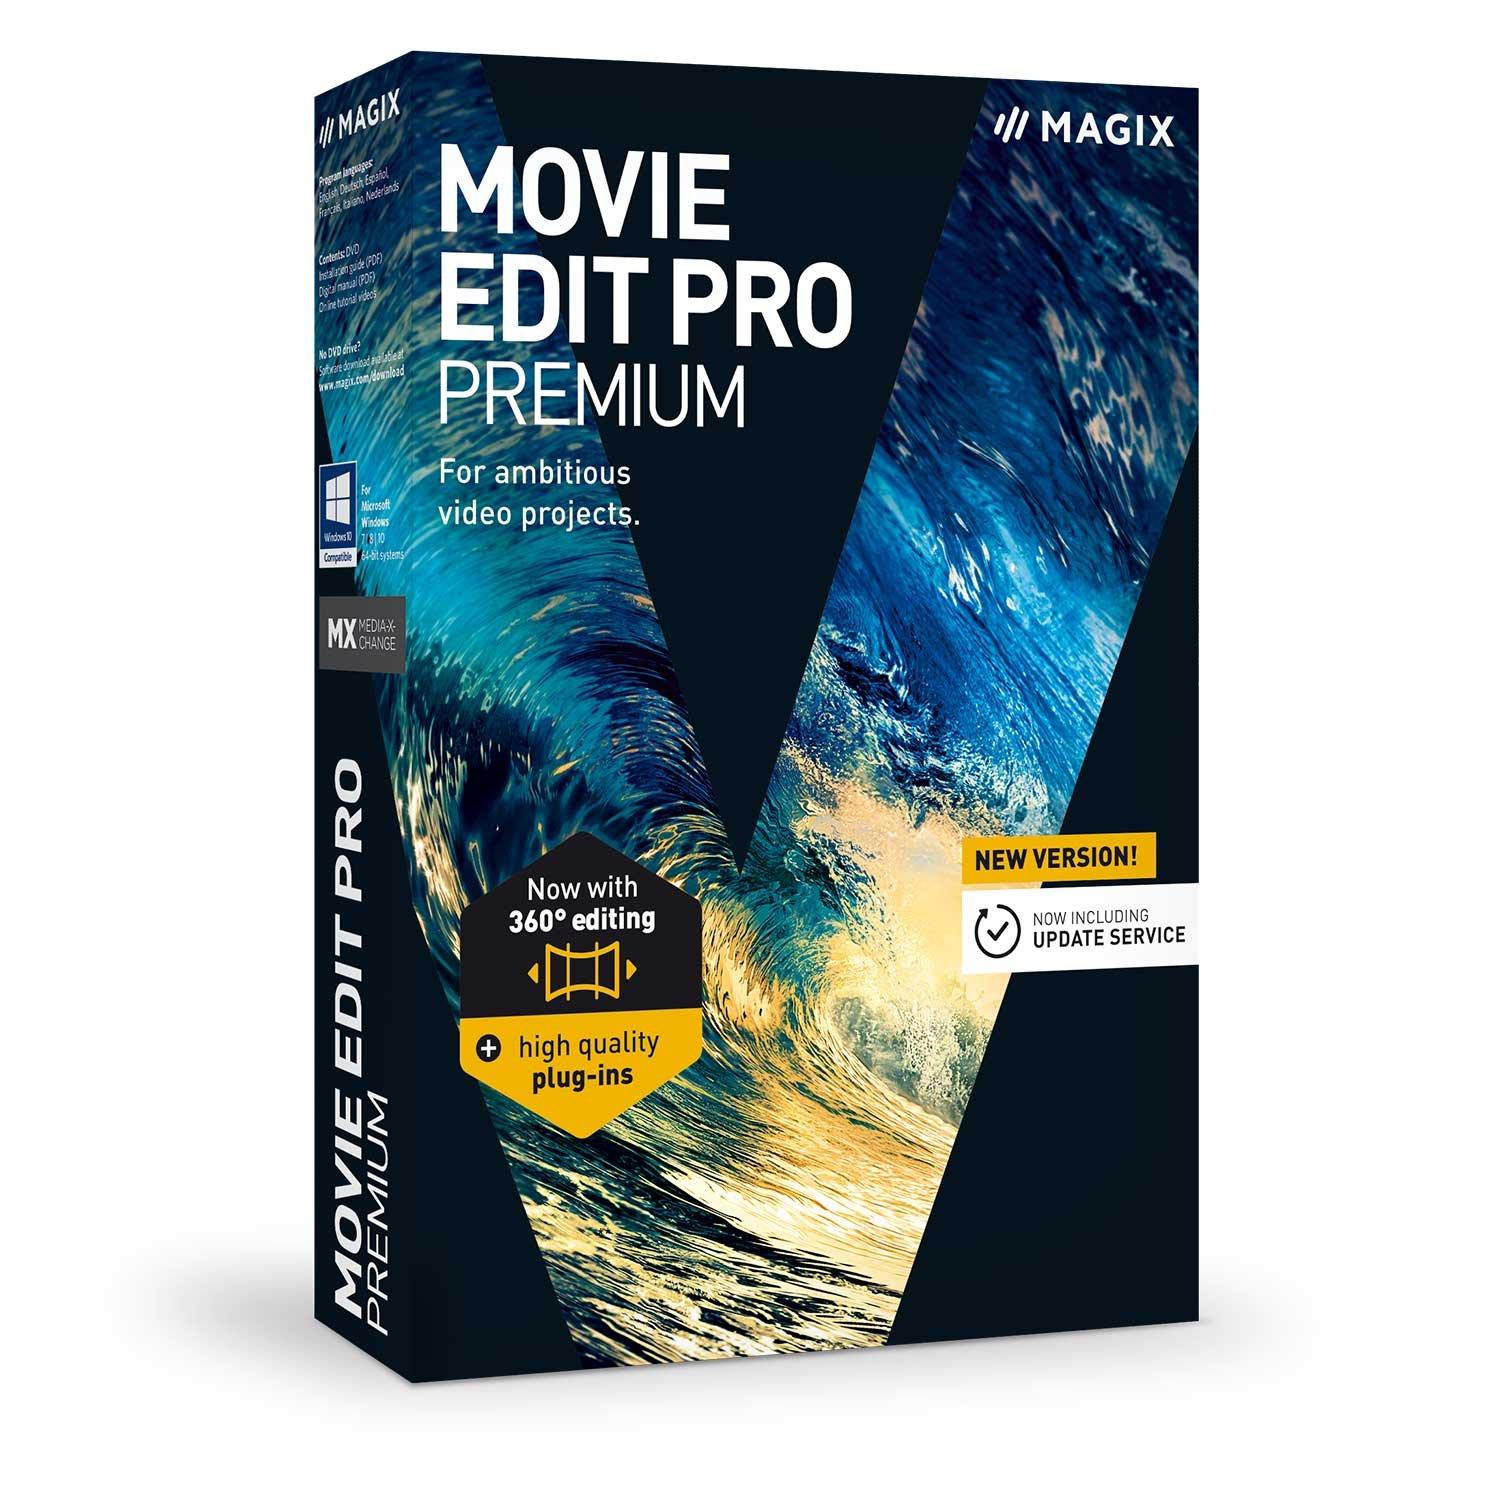 MAGIX Movie Edit Pro Premium 2018 17.0.1.148